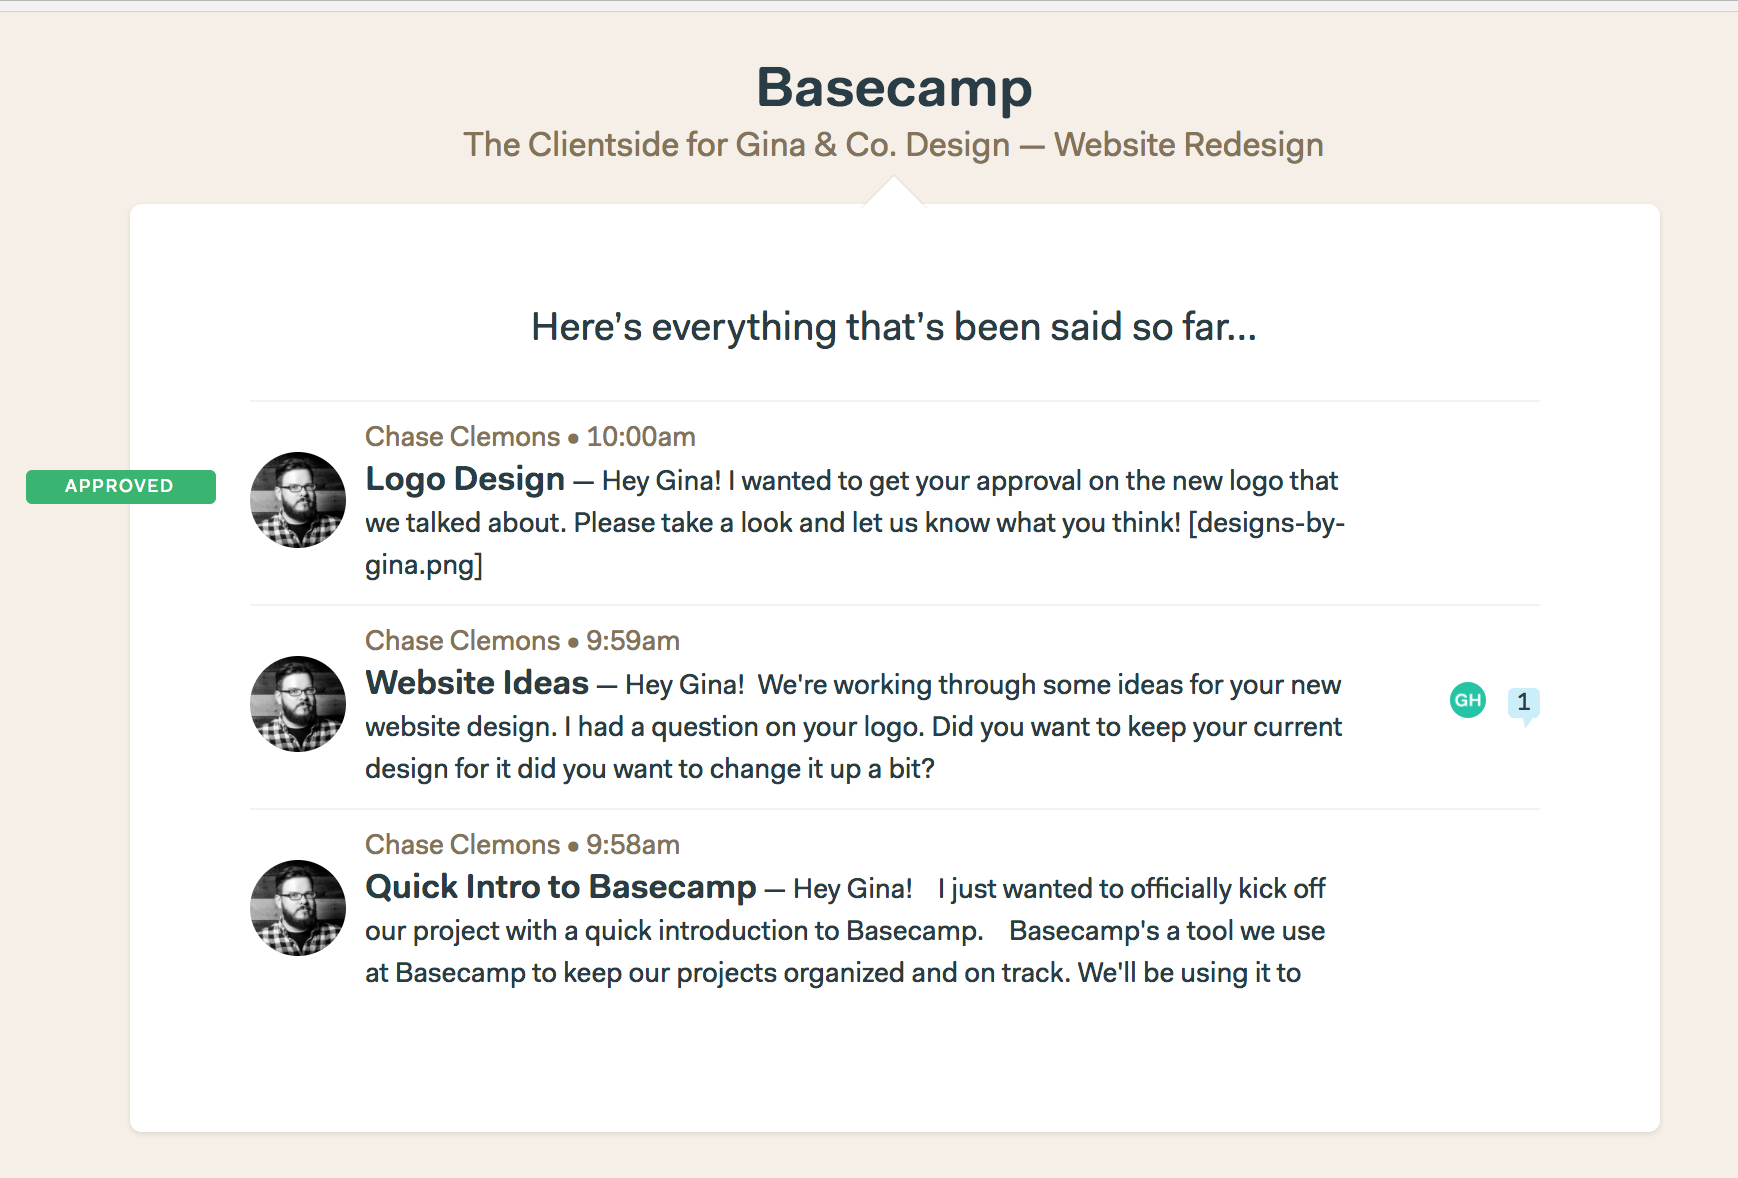 Using the Clientside - Basecamp 3 Help